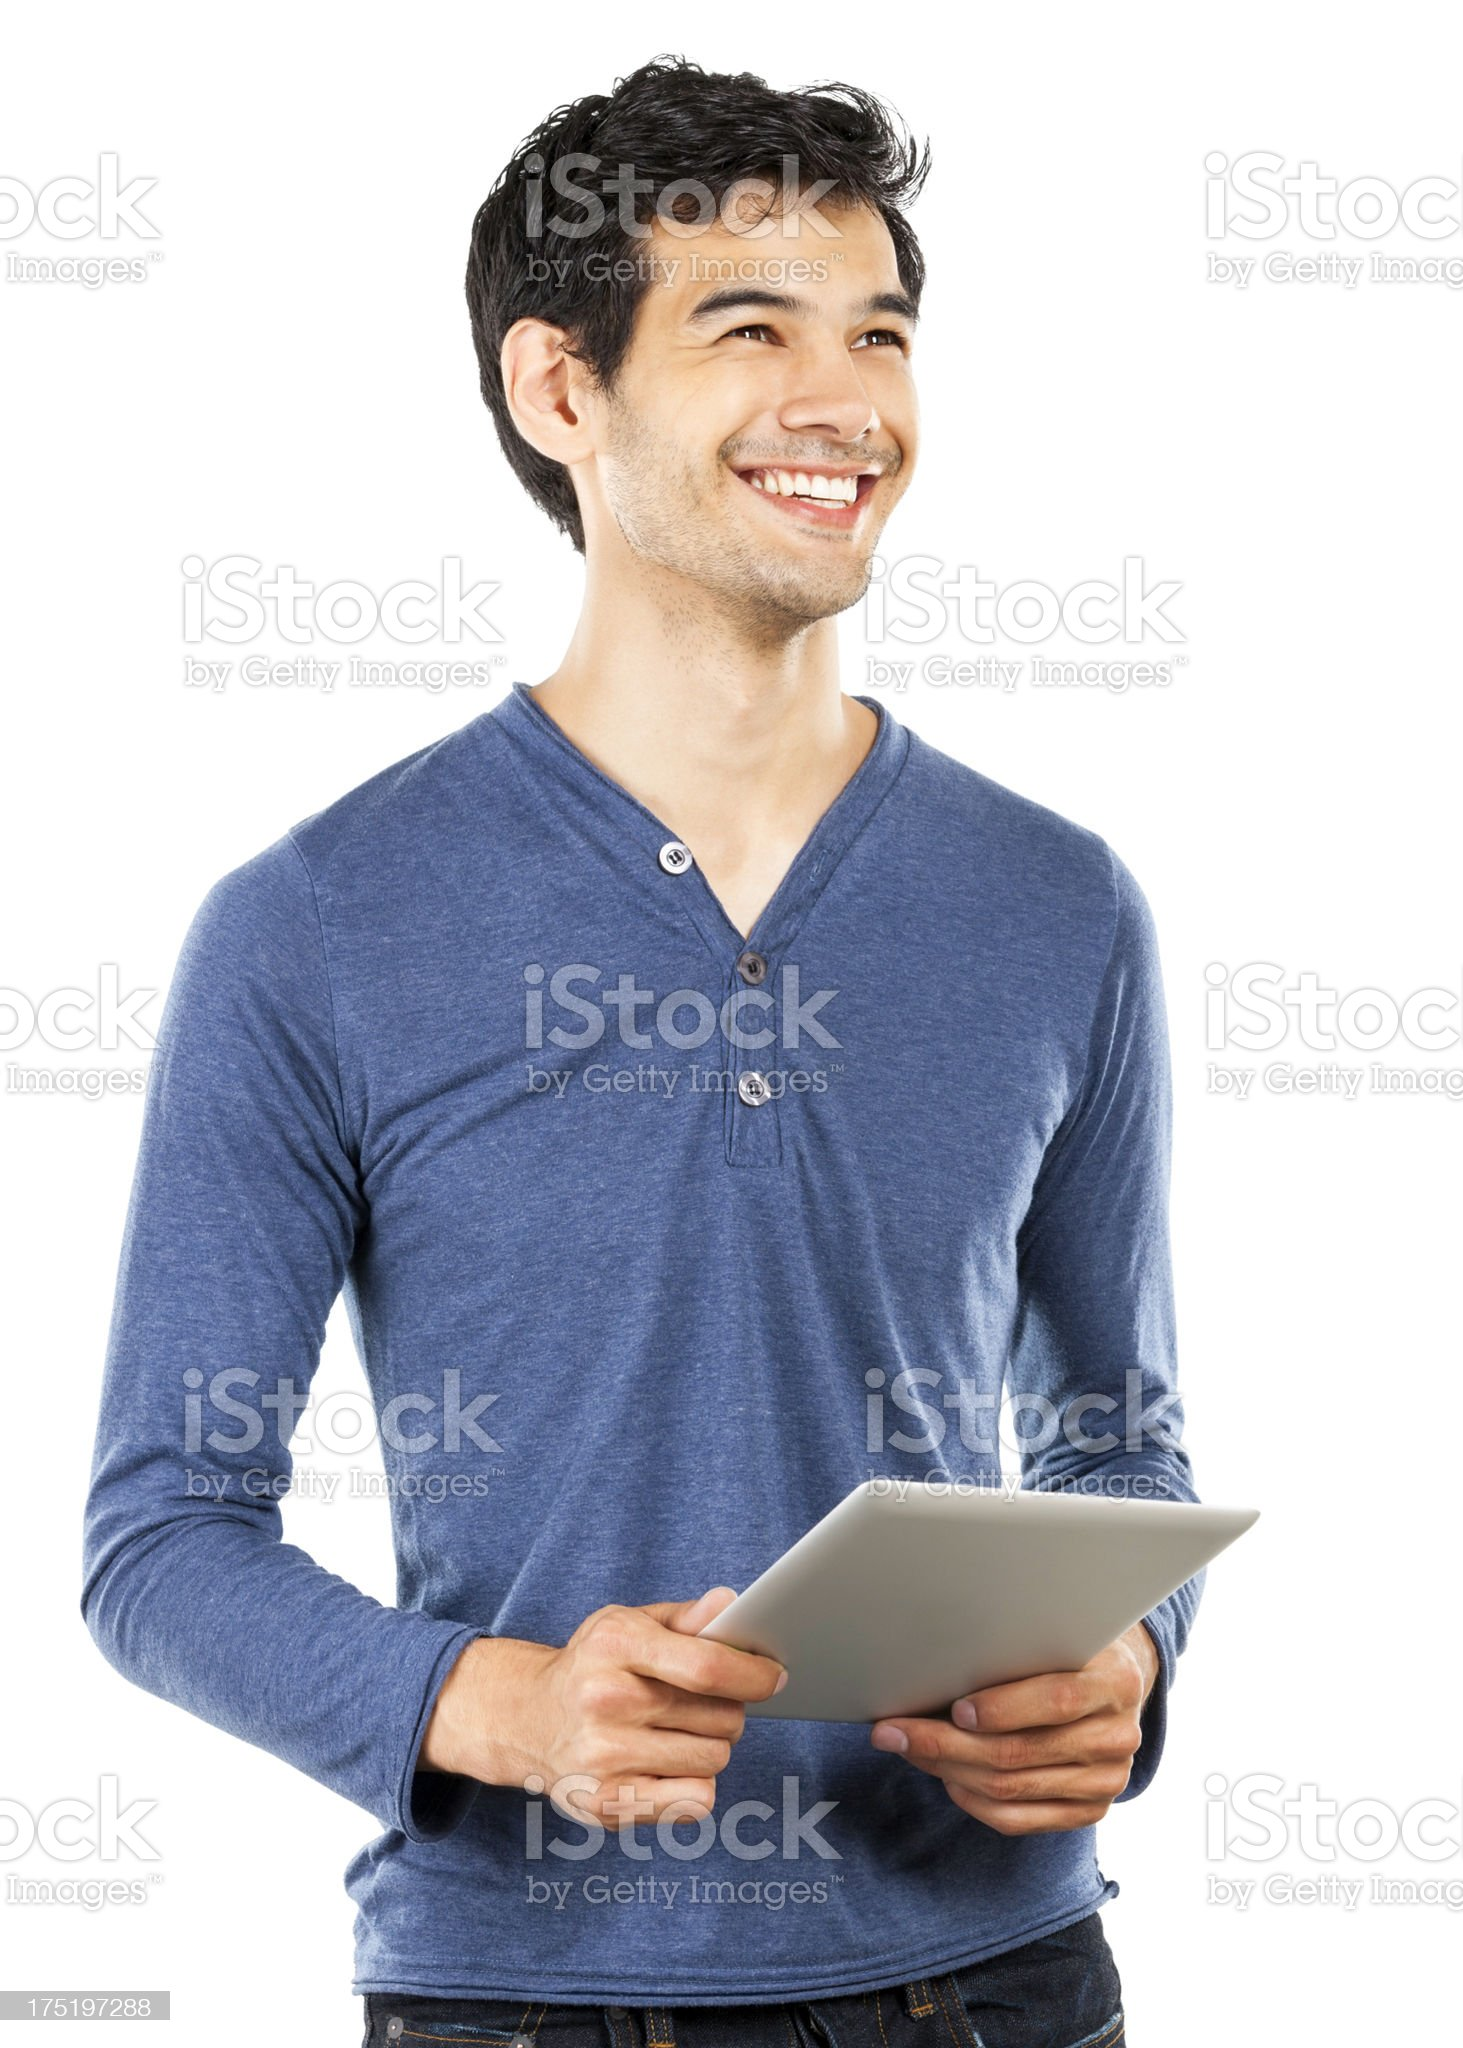 Smiling young man with a tablet isolated on white royalty-free stock photo